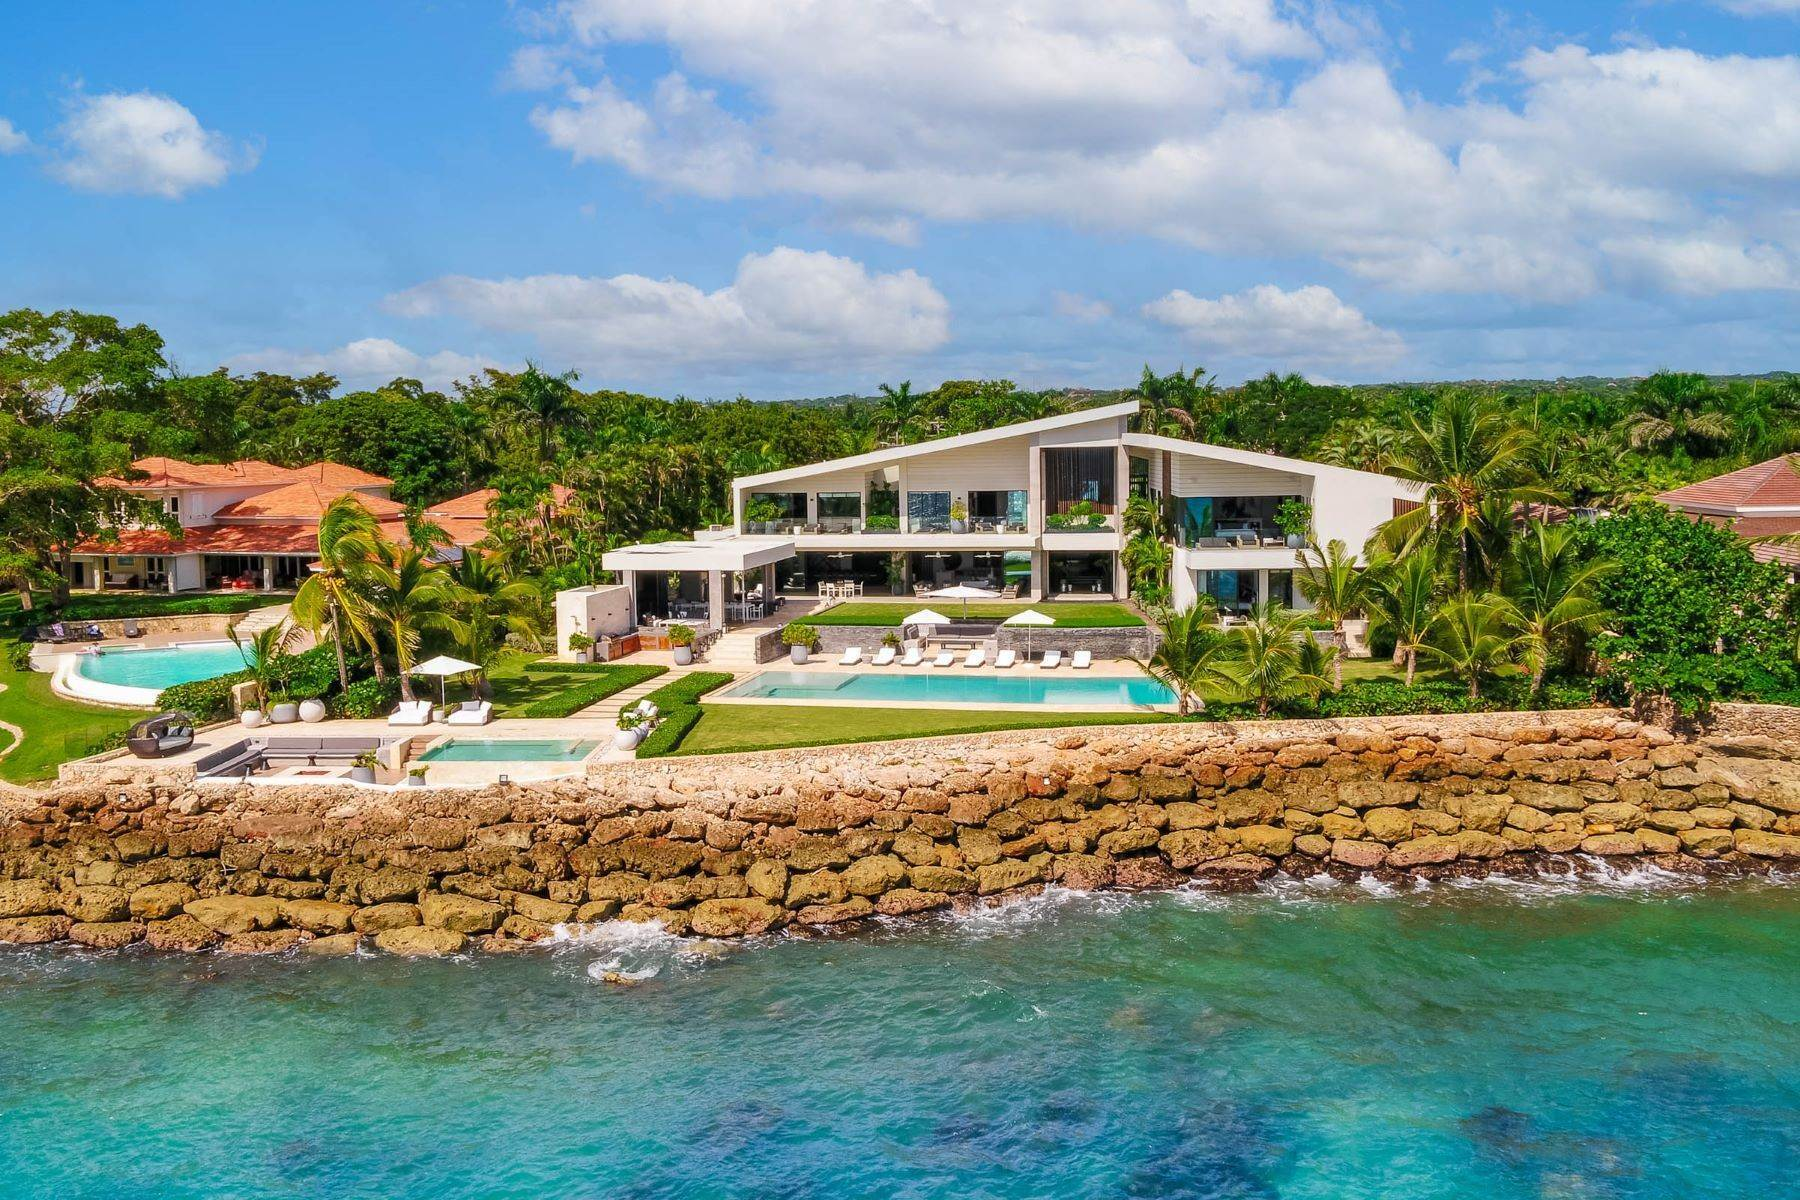 Single Family Homes for Sale at NEW Punta Minitas Modern Oceanfront Estate Punta Minitas # 19 Casa De Campo, La Romana 22000 Dominican Republic